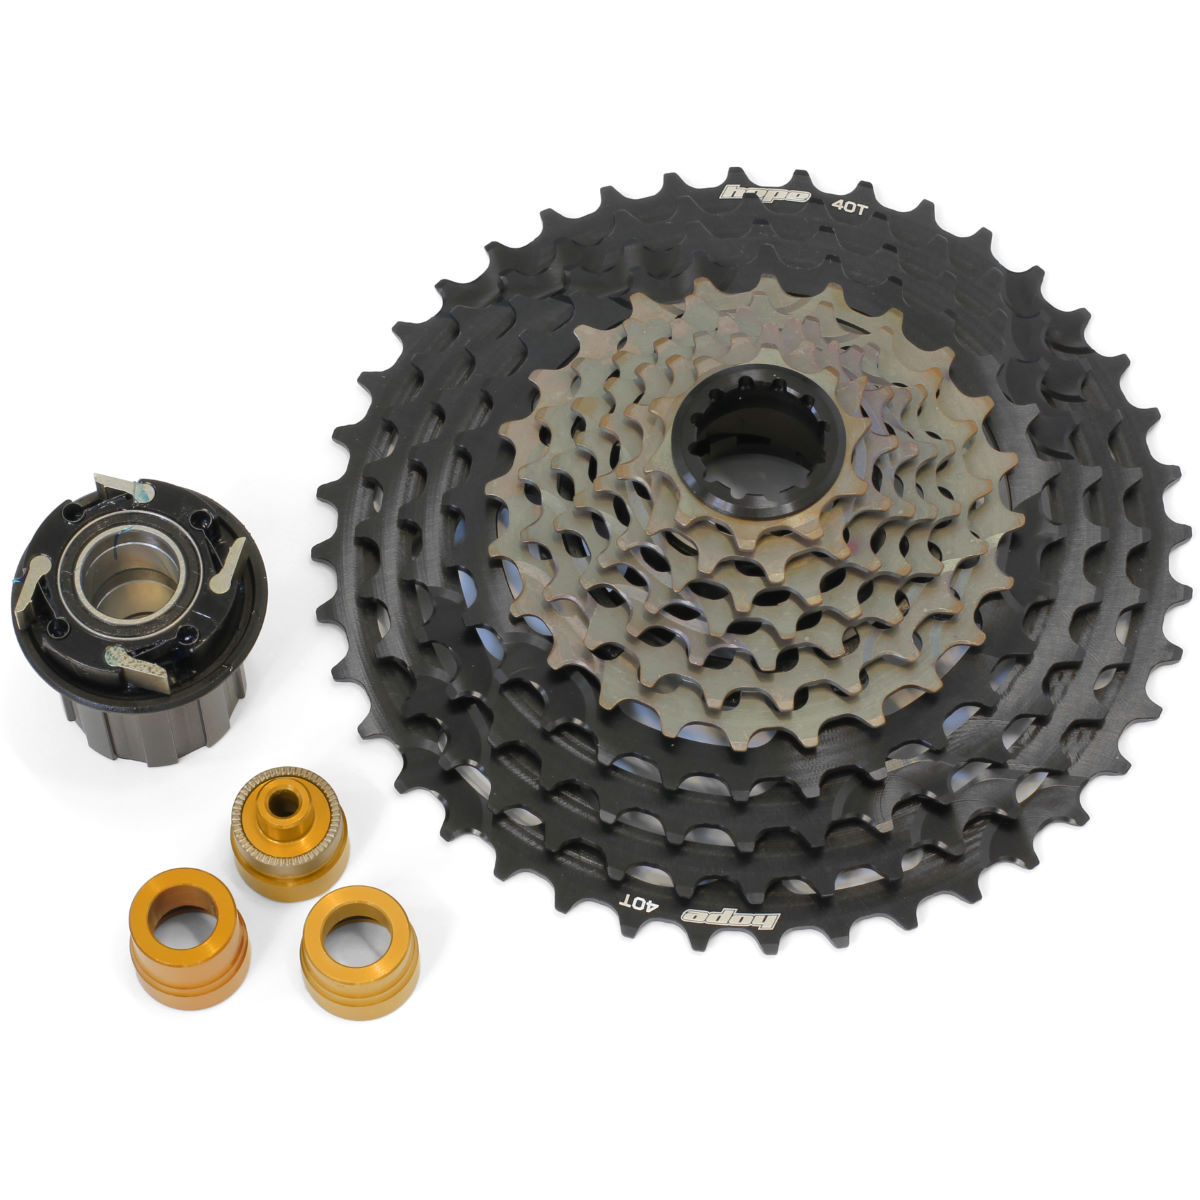 Hope Hope 11 Speed Cassette with Evo Freehub   Cassettes